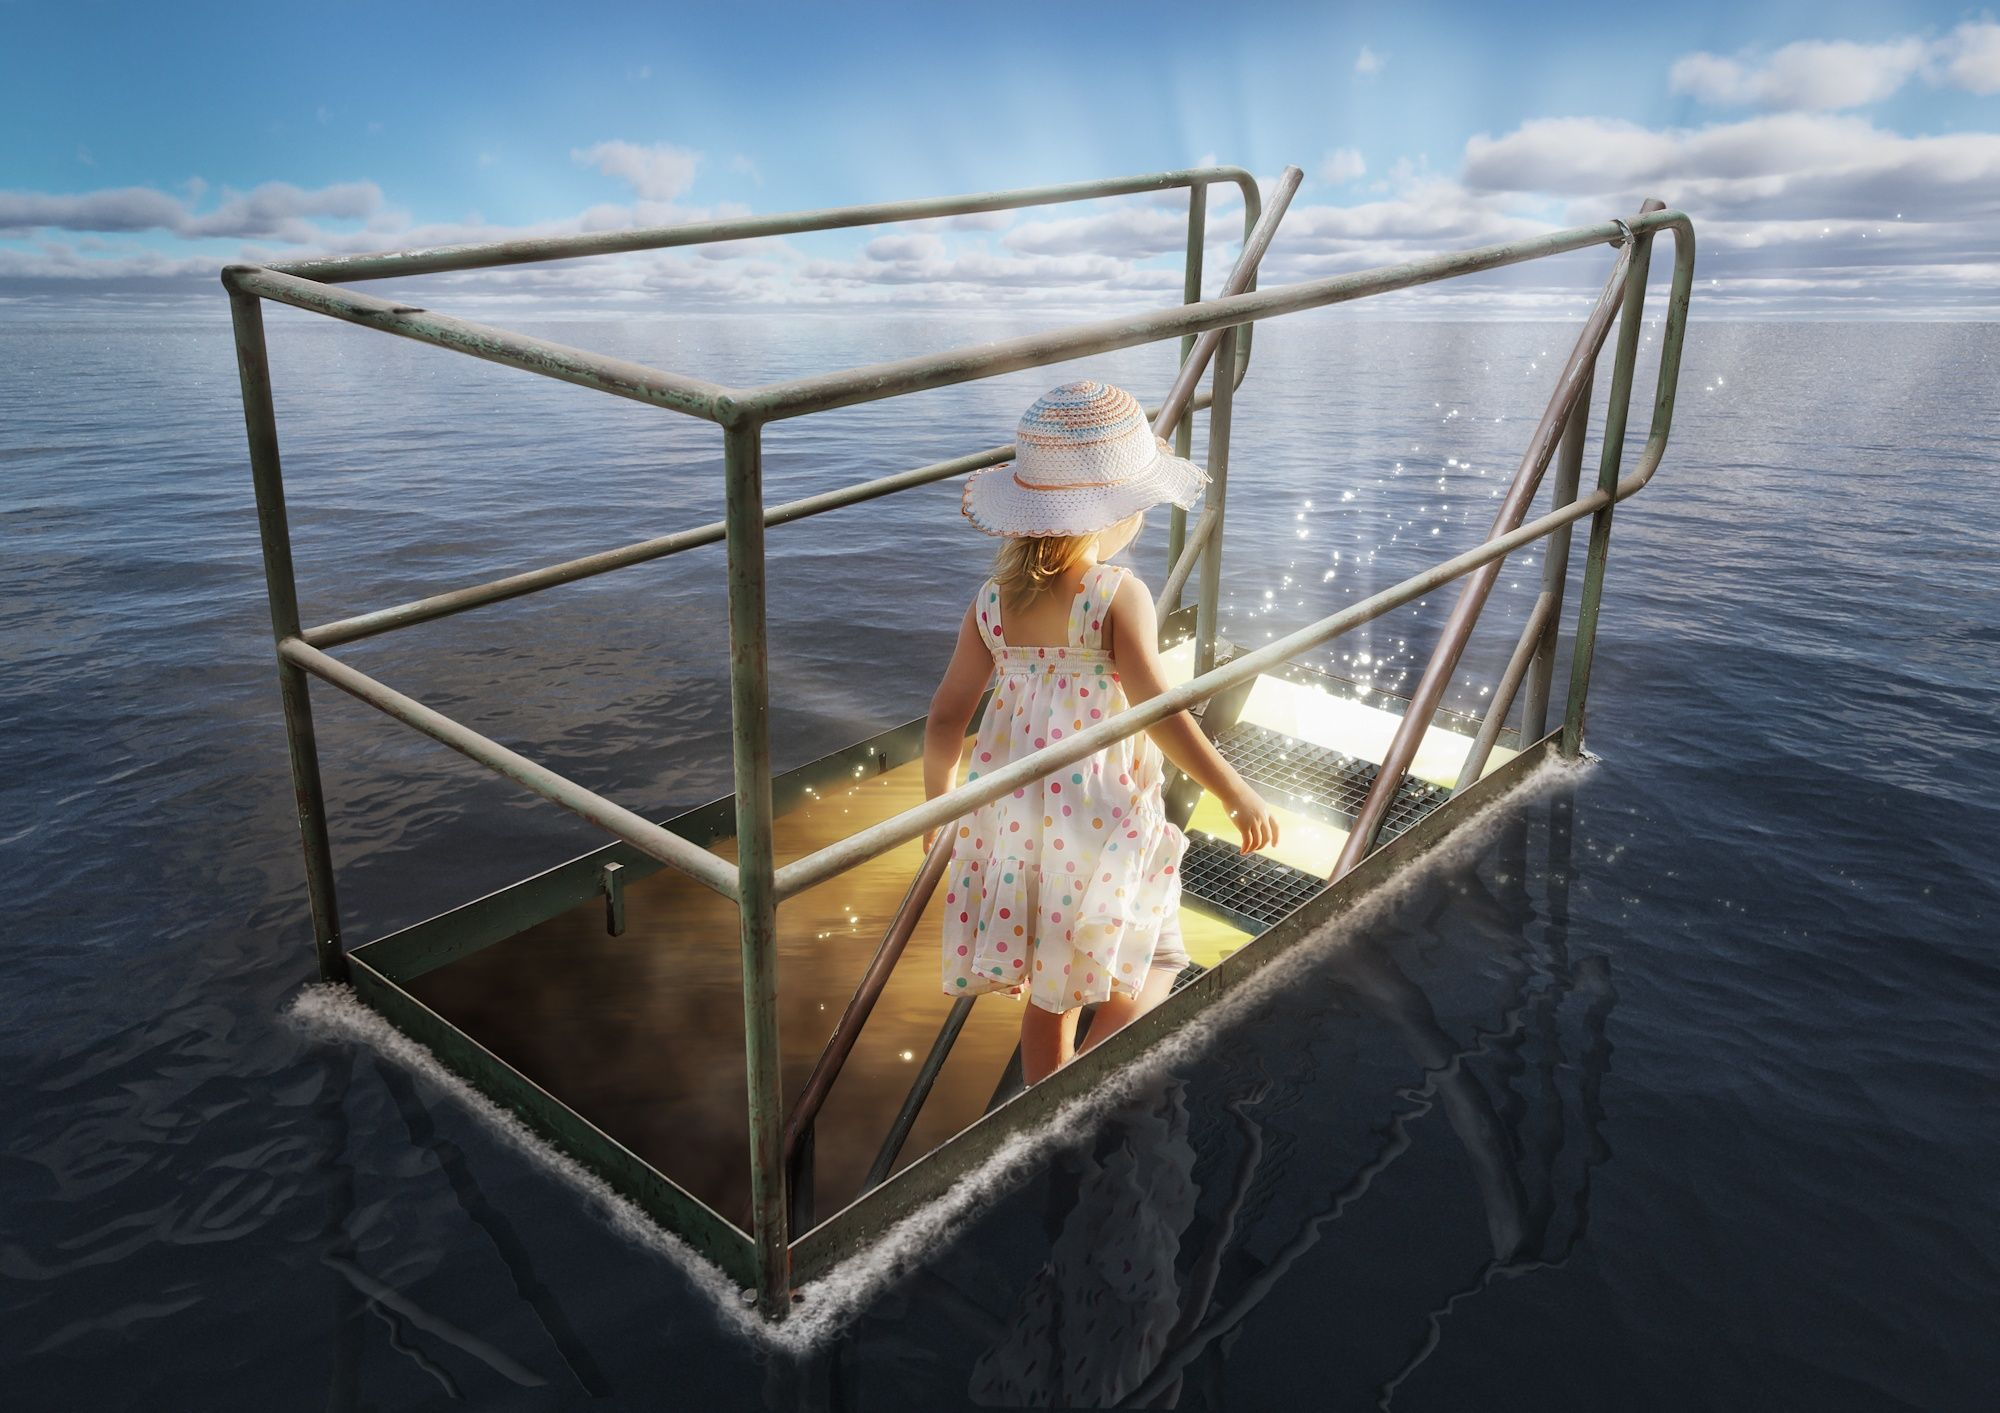 The Girl from Atlantis by John Wilhelm is a photoholic on